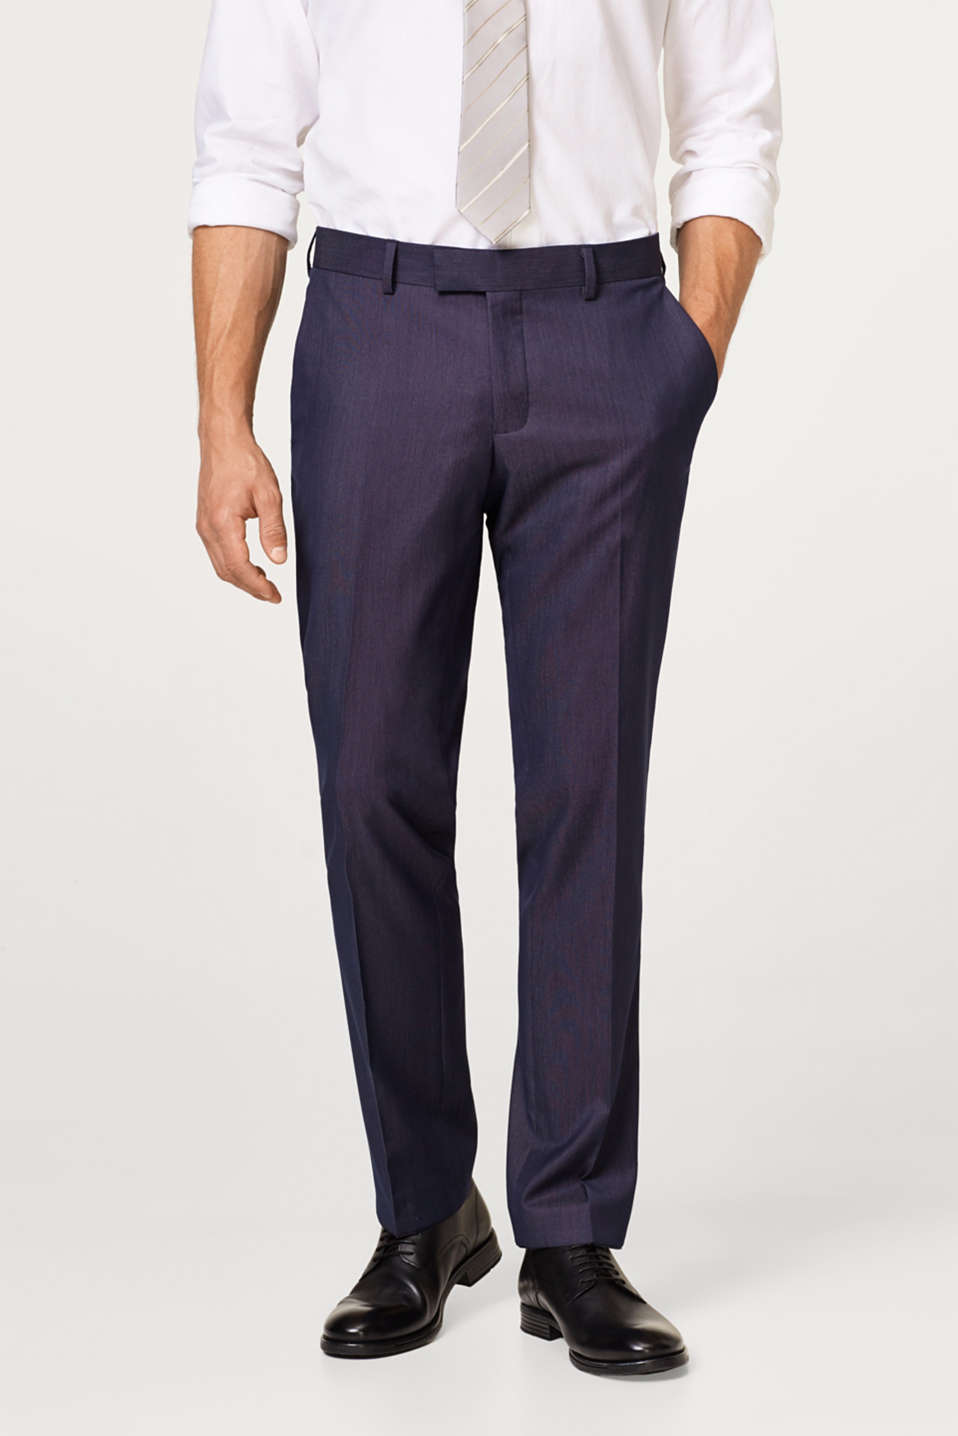 Esprit - DARK BLUE MELANGE mix + match: Trousers with waist pleats